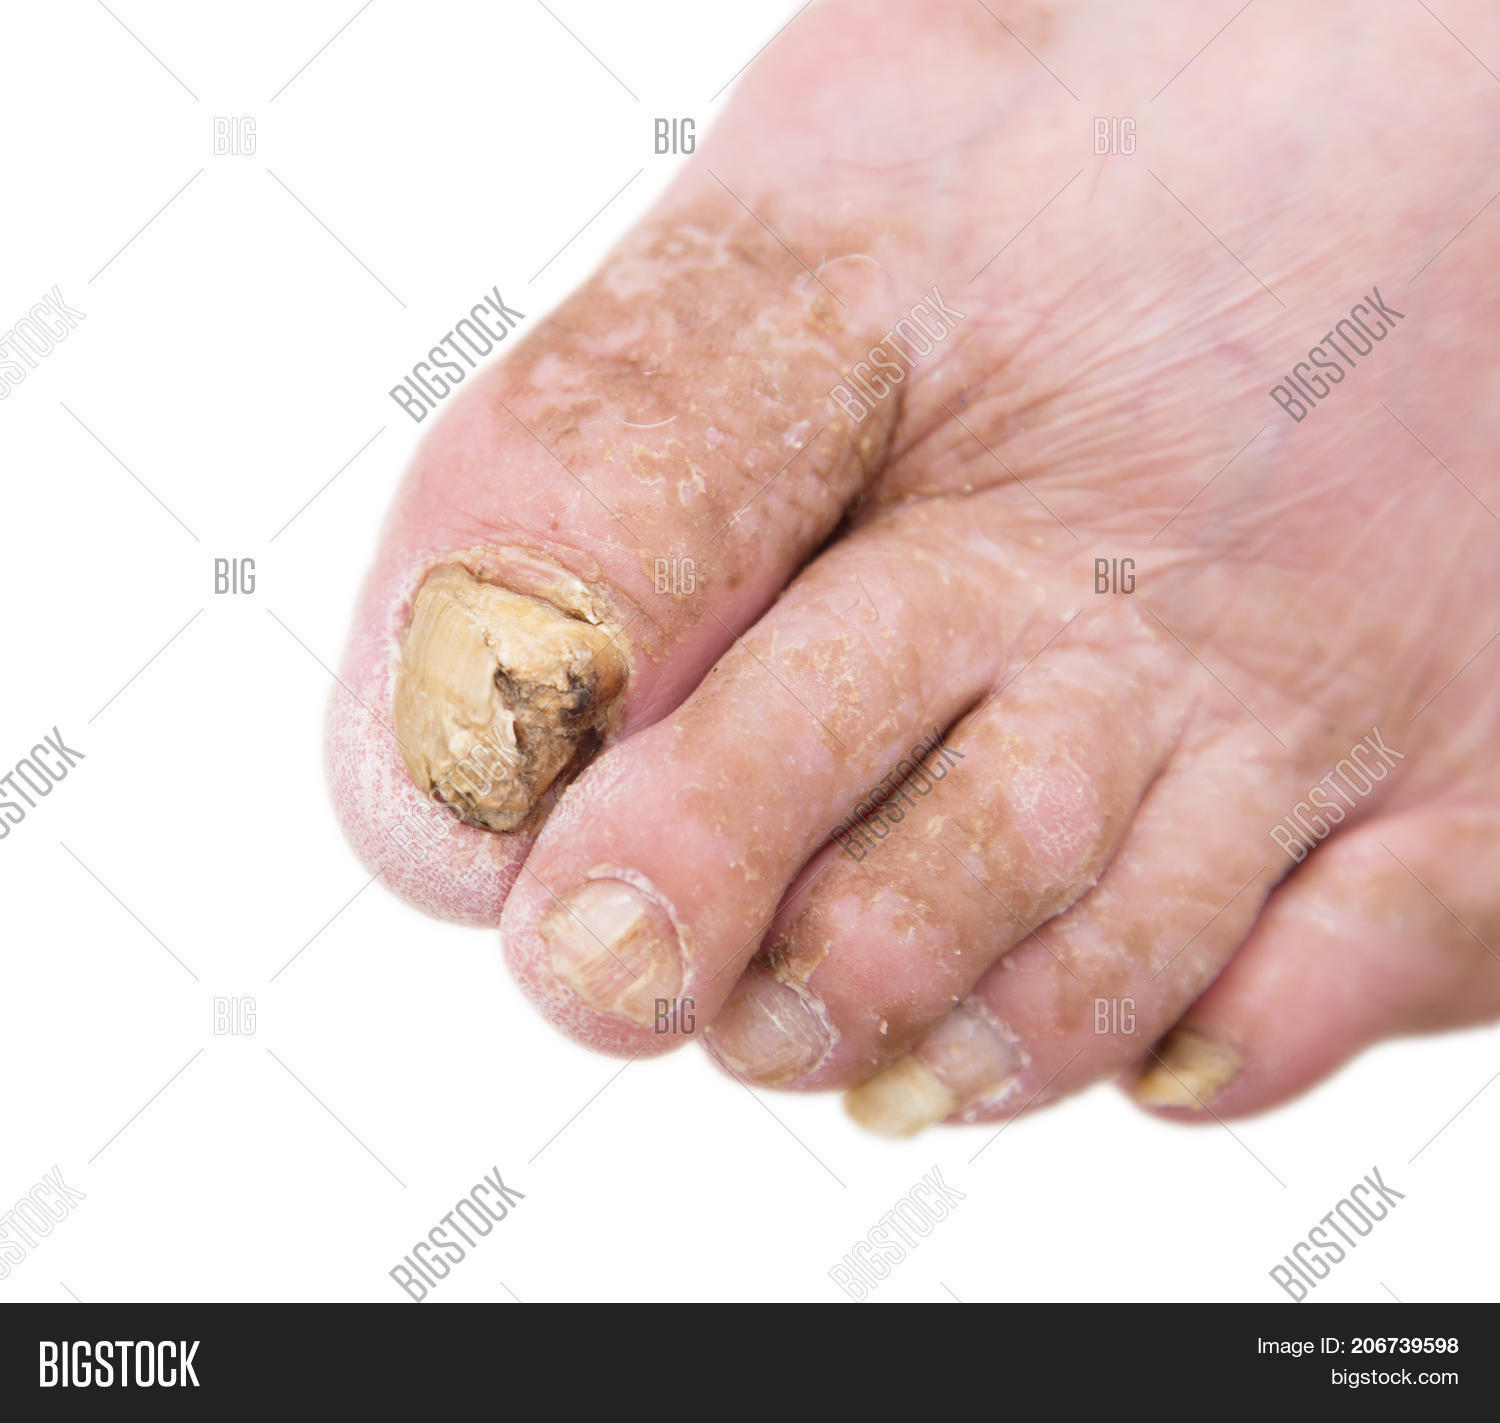 Fungus Infection On Nails Man\'s Image & Photo | Bigstock